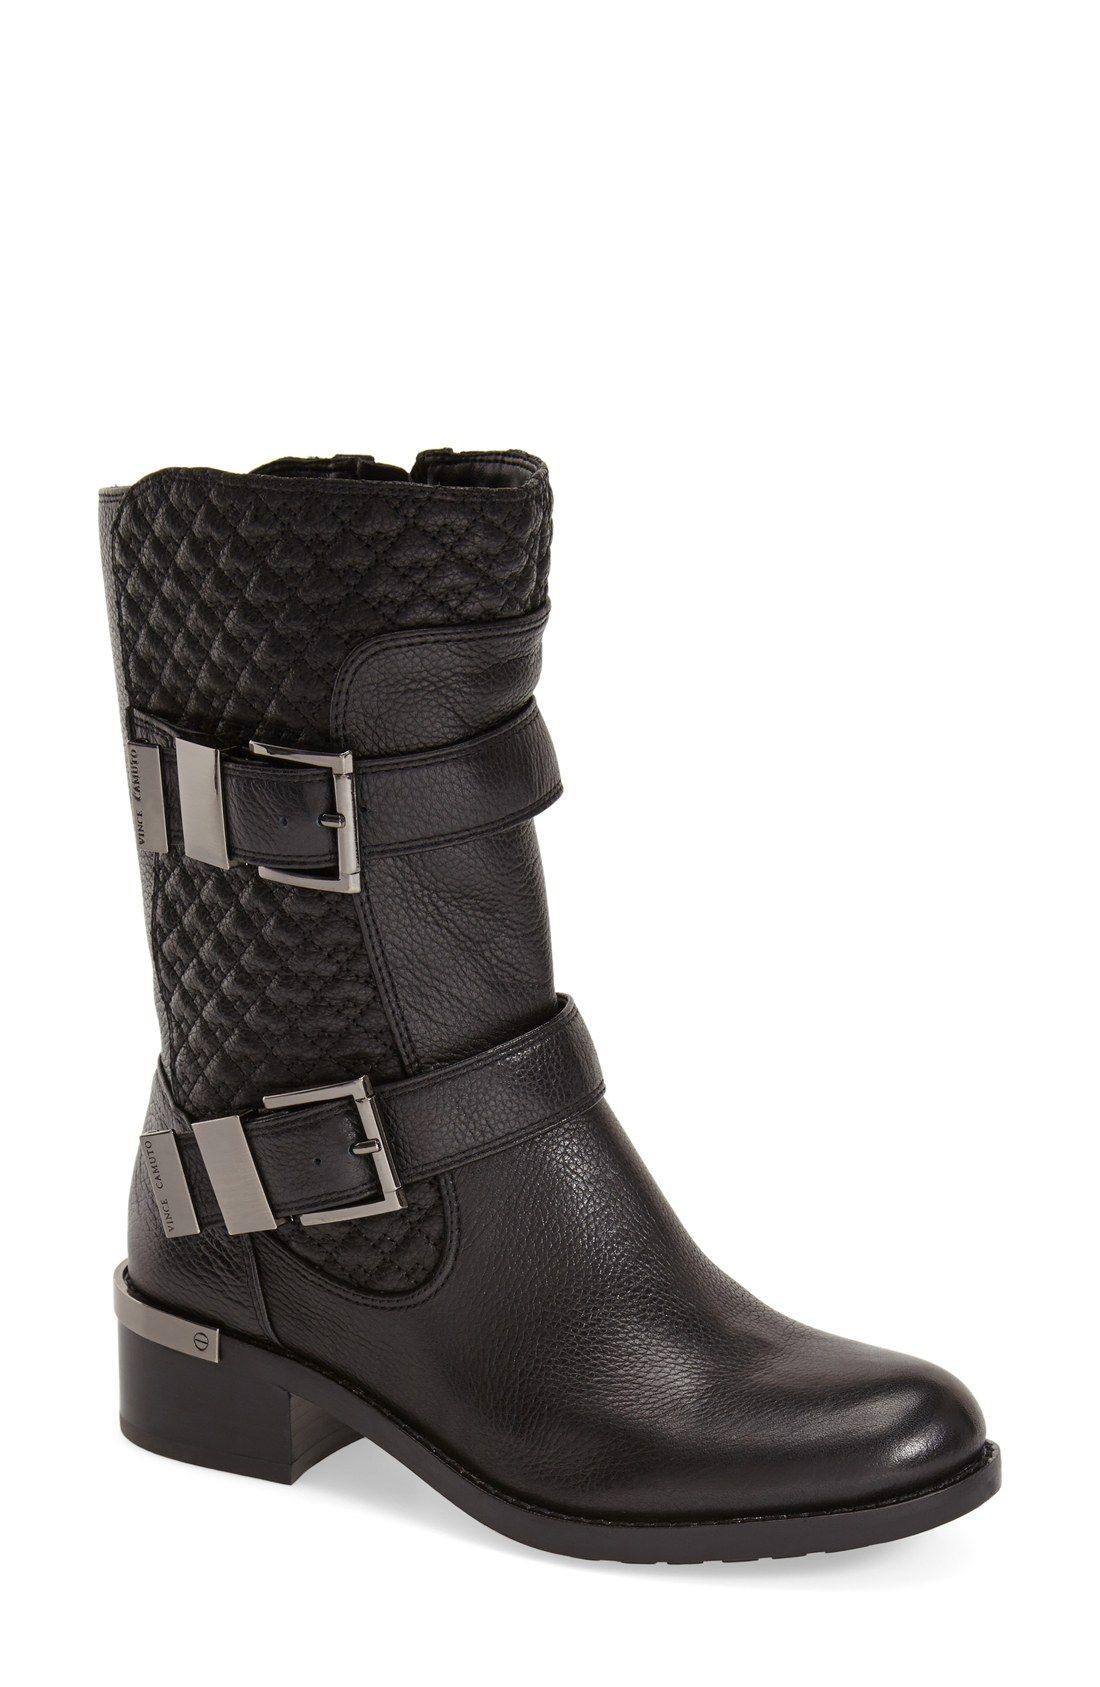 Womens Vince Camuto Women's Welton Motorcycle Boot Outlet Genuine Size 37